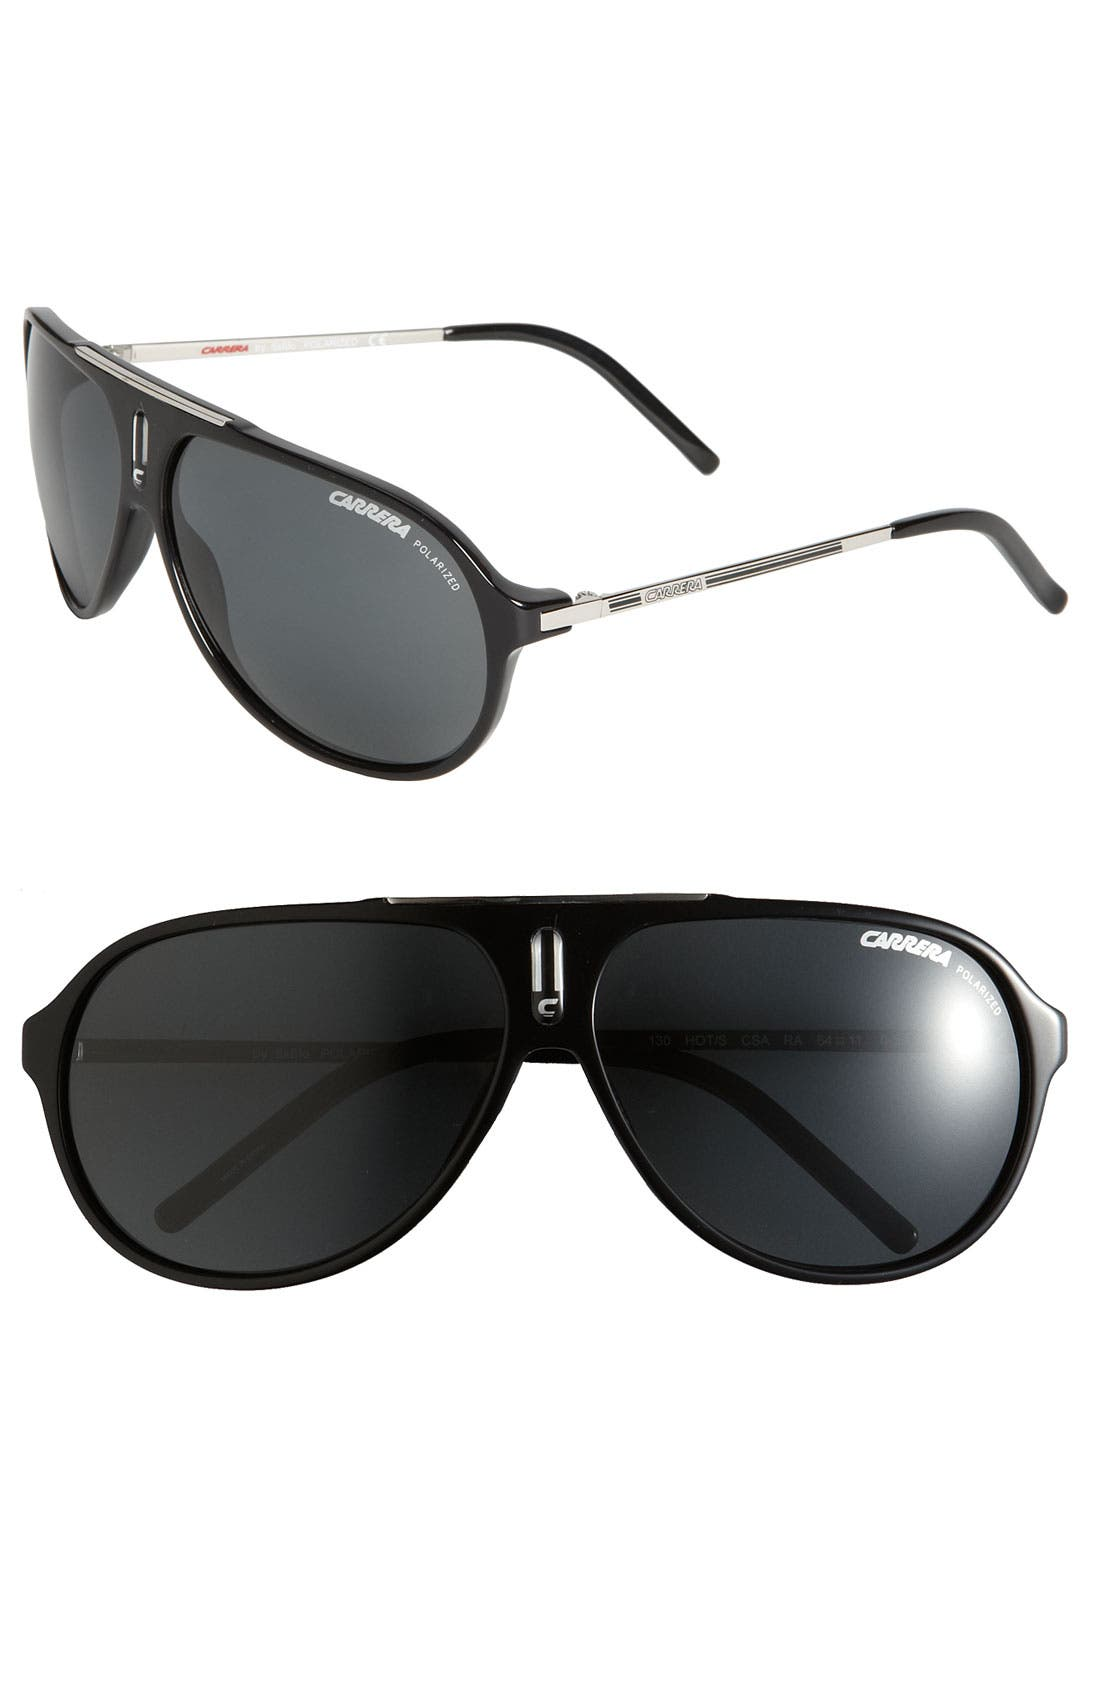 Main Image - Carrera Eyewear 'Hots' 64mm Aviator Sunglasses